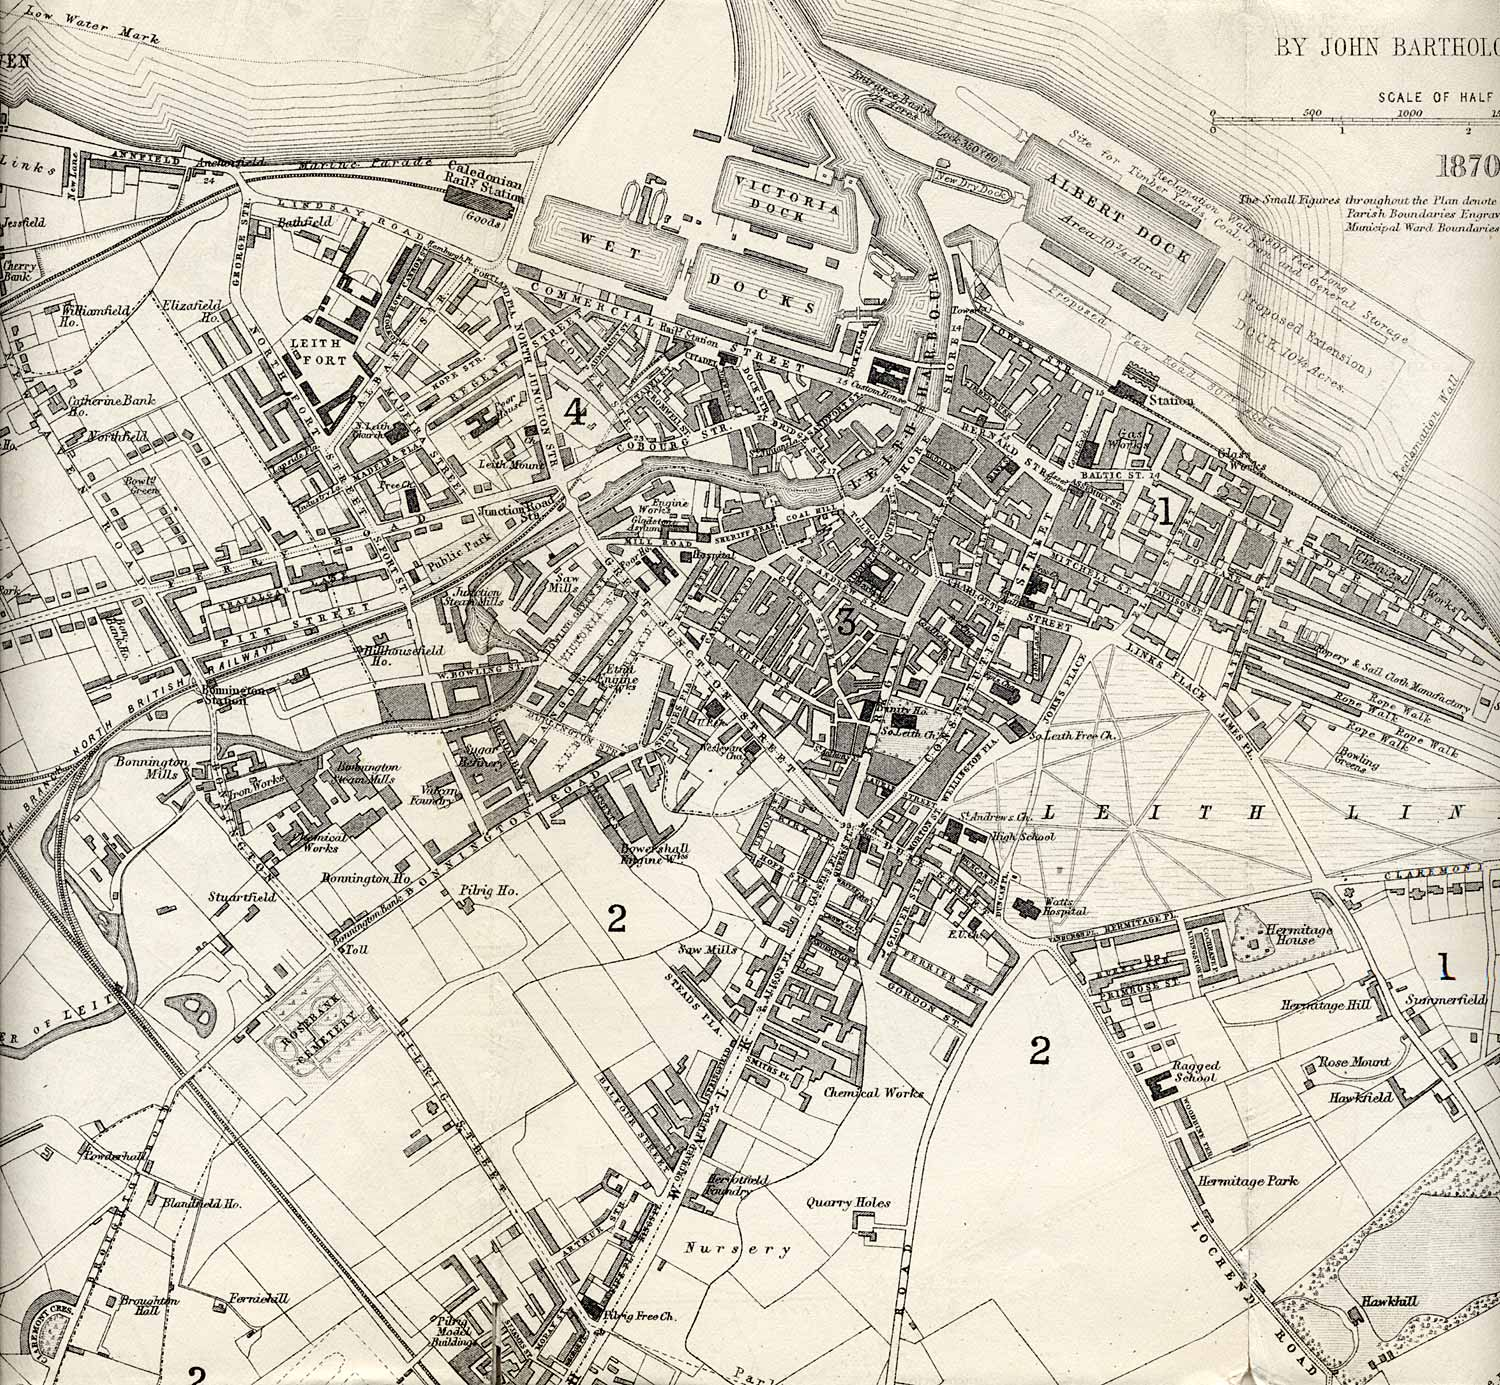 Leith  -  1870  -  Enlargement of part of a map by John Bartholemew that appeared in the Edinburgh & Leith Post Office Directory 1870-71